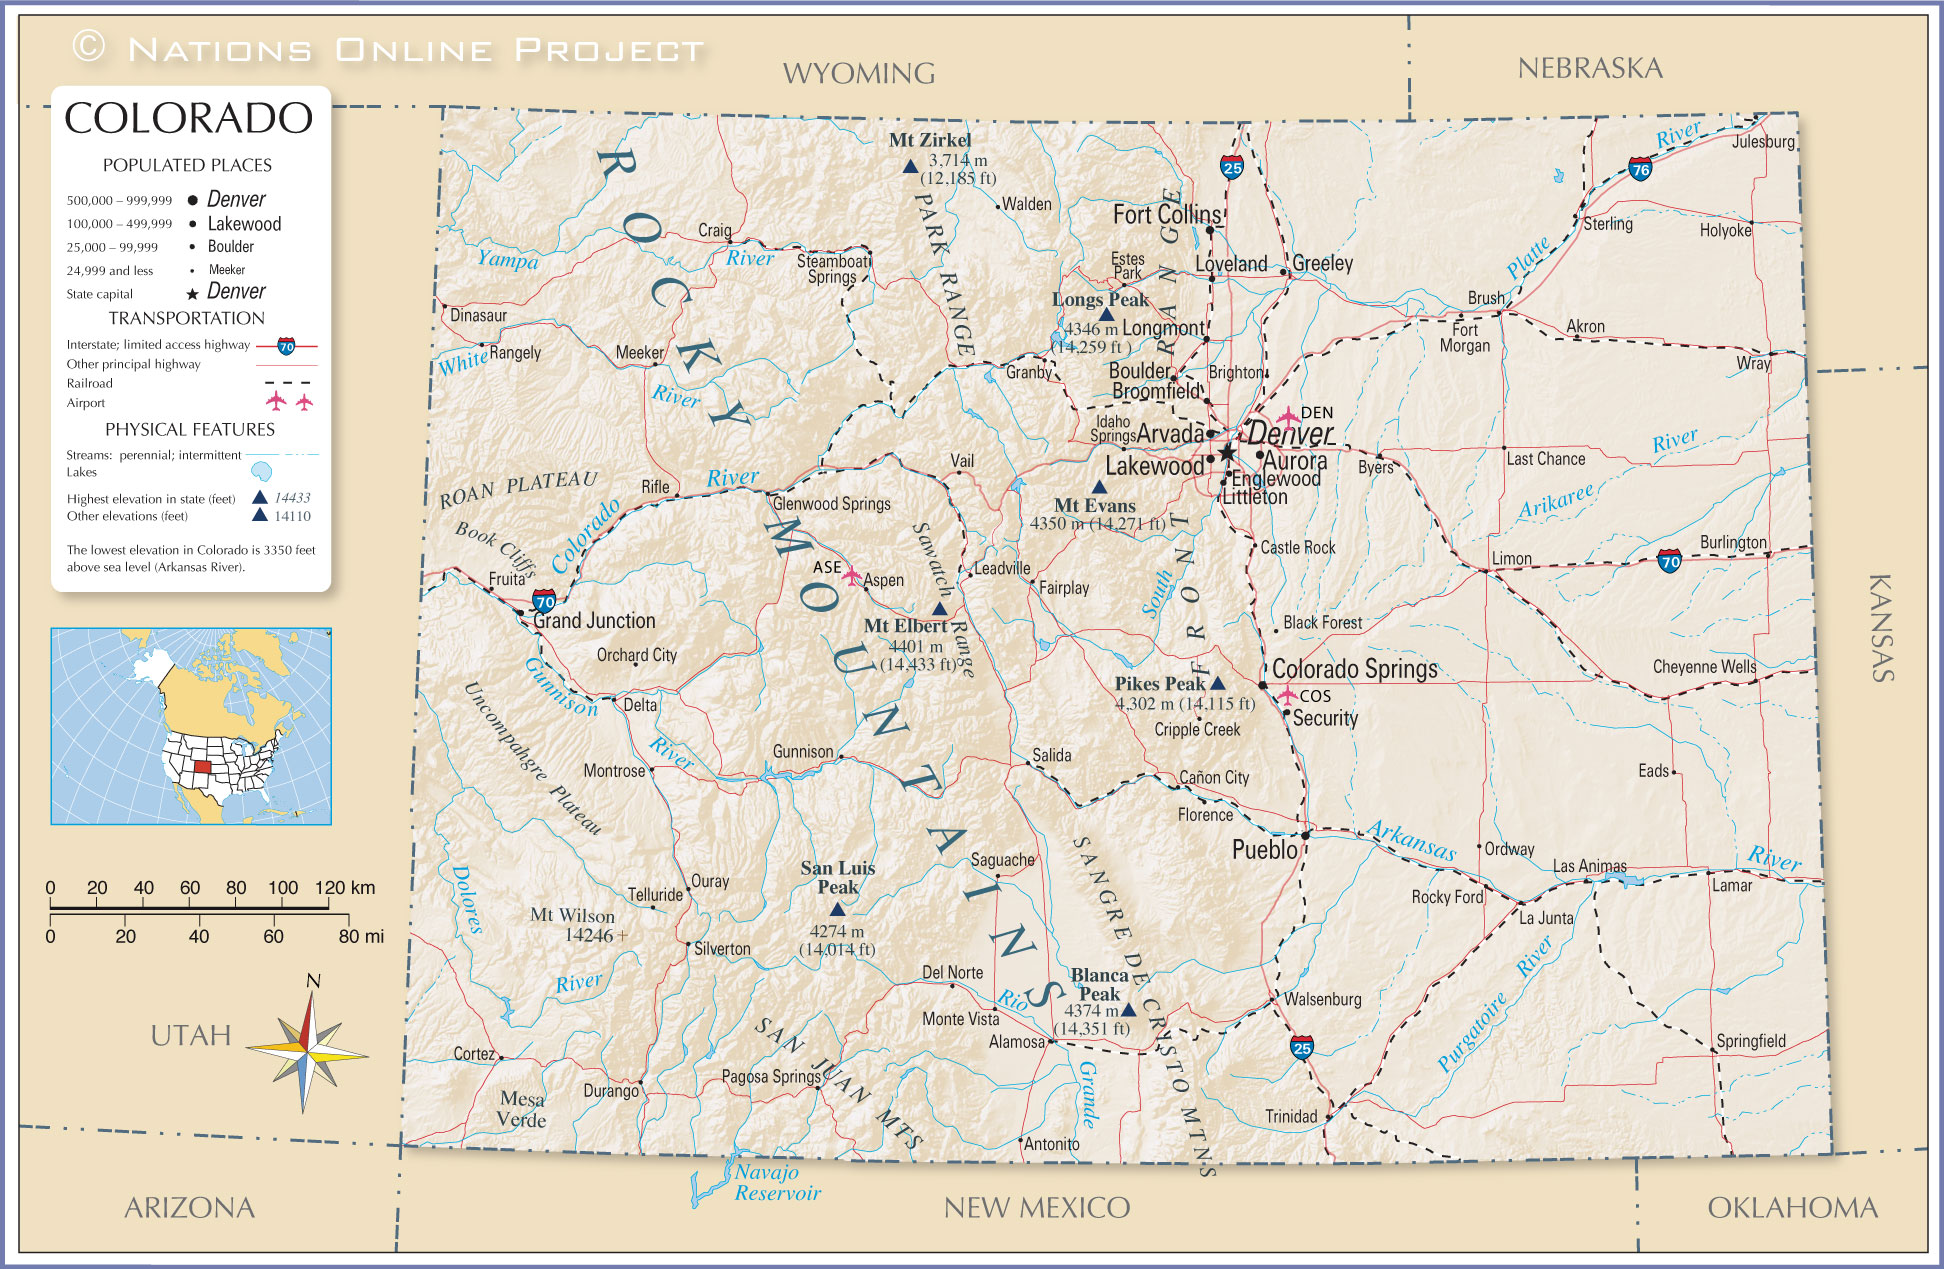 Reference Map Of Colorado USA Nations Online Project - Coloradomap